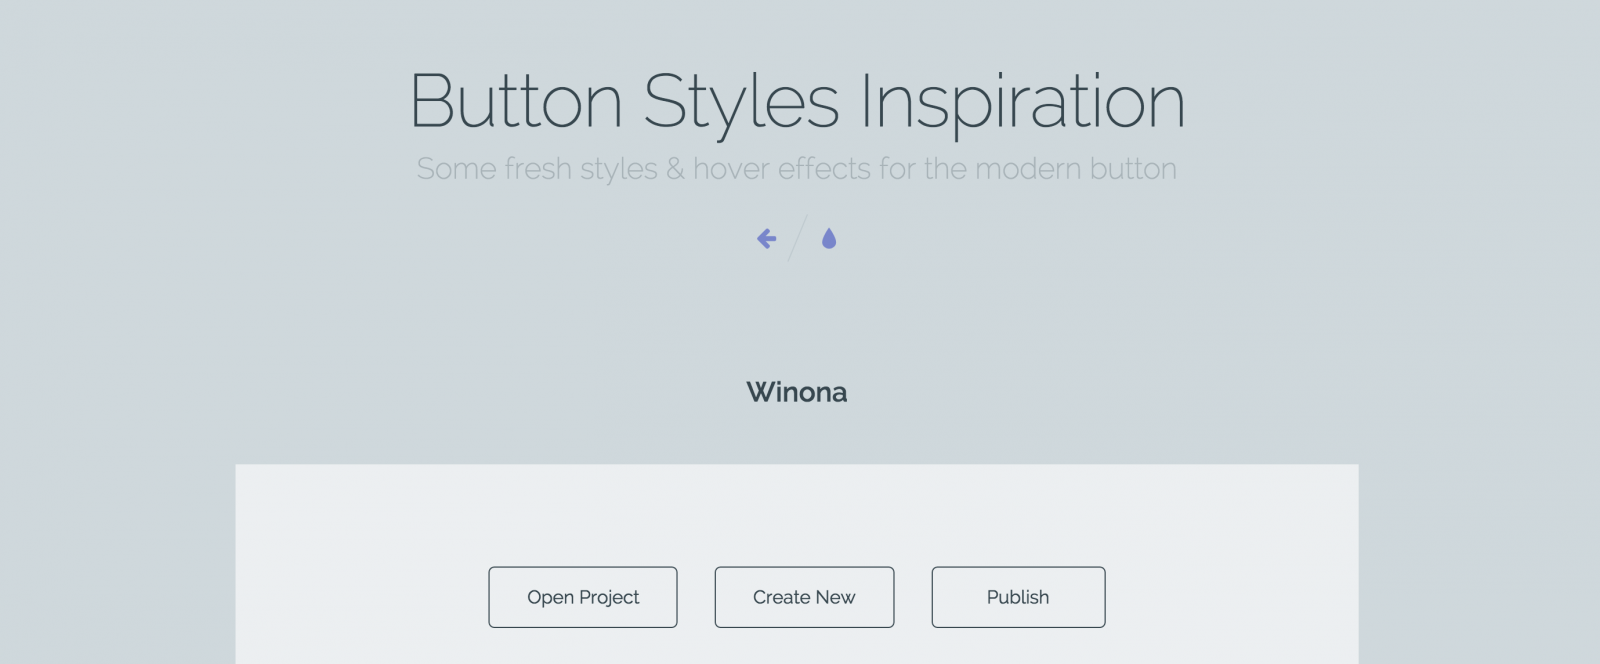 Button Styles Inspiration in Your UX Toolkit